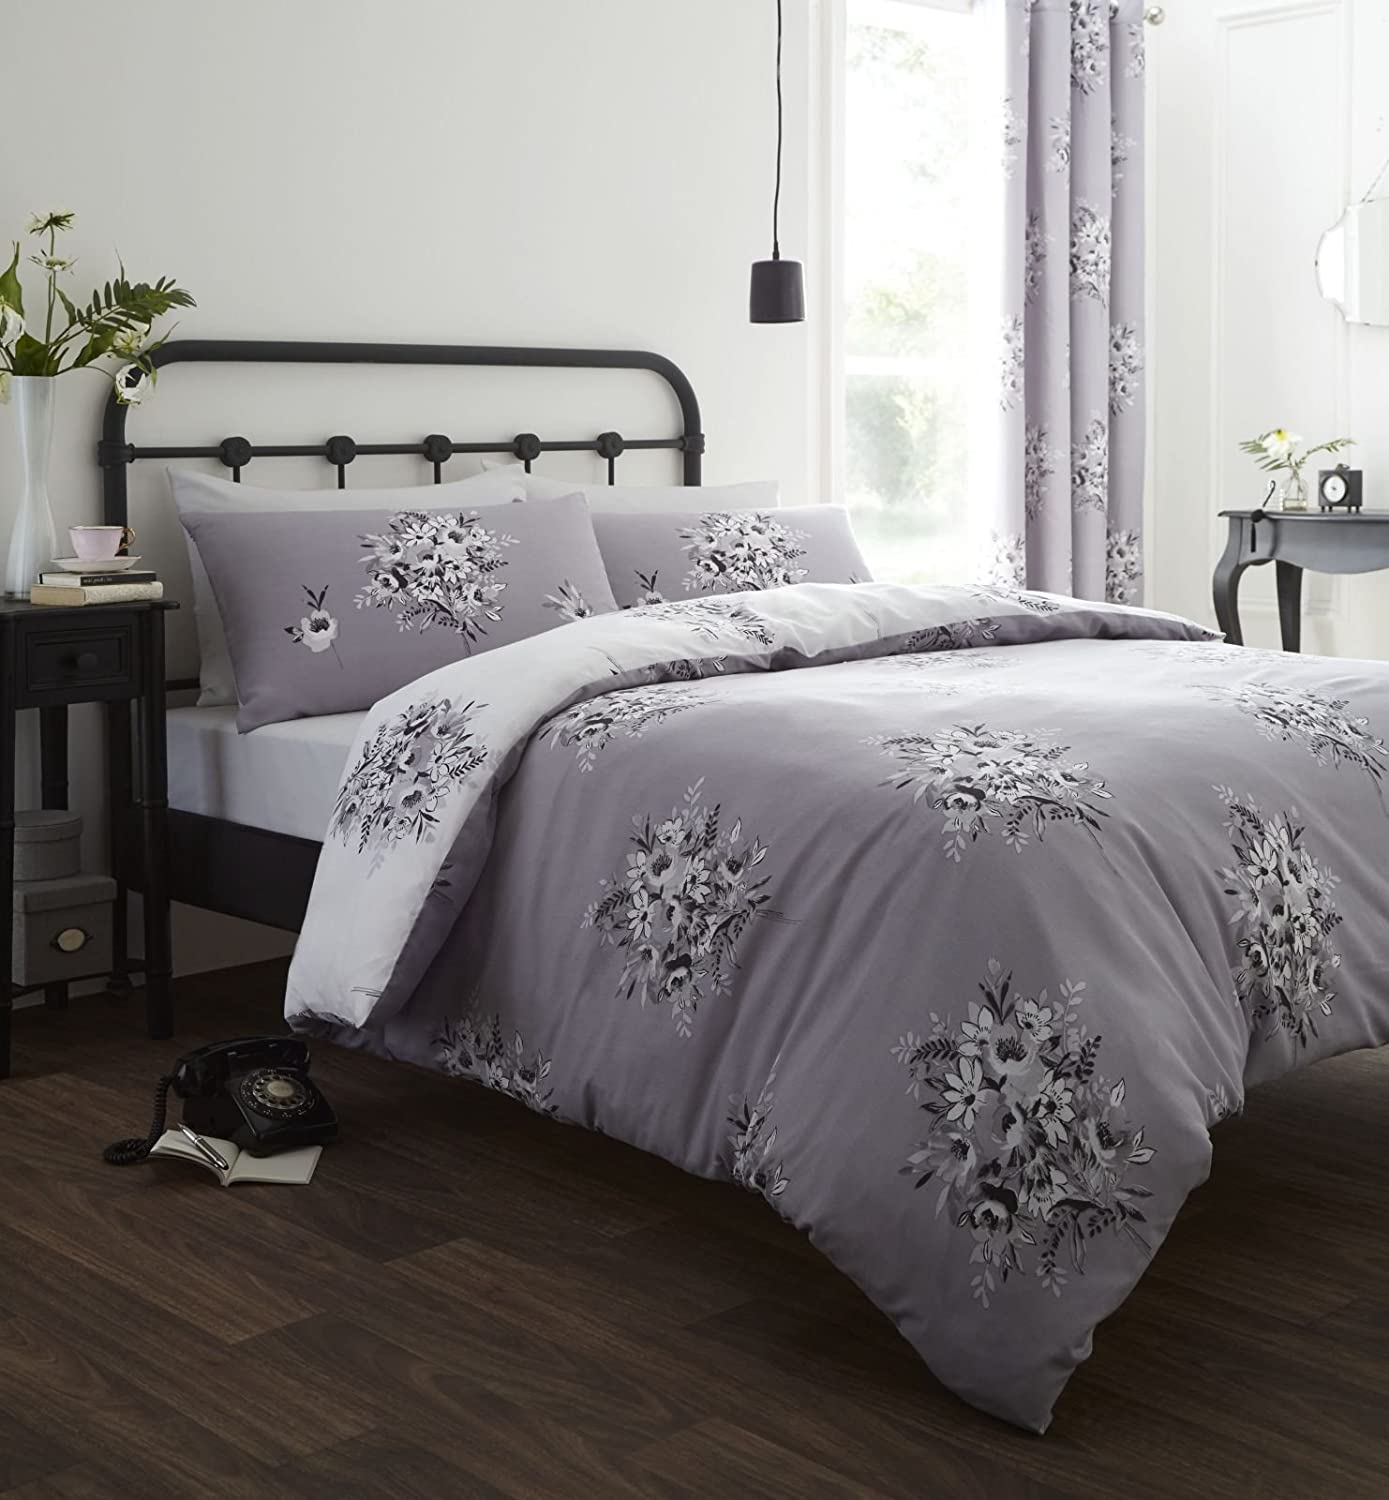 Catherine Lansfield Floral Bouquet Easy Care Double Duvet Set Grey Turner Bianca BD/40832/W/DQS/GY